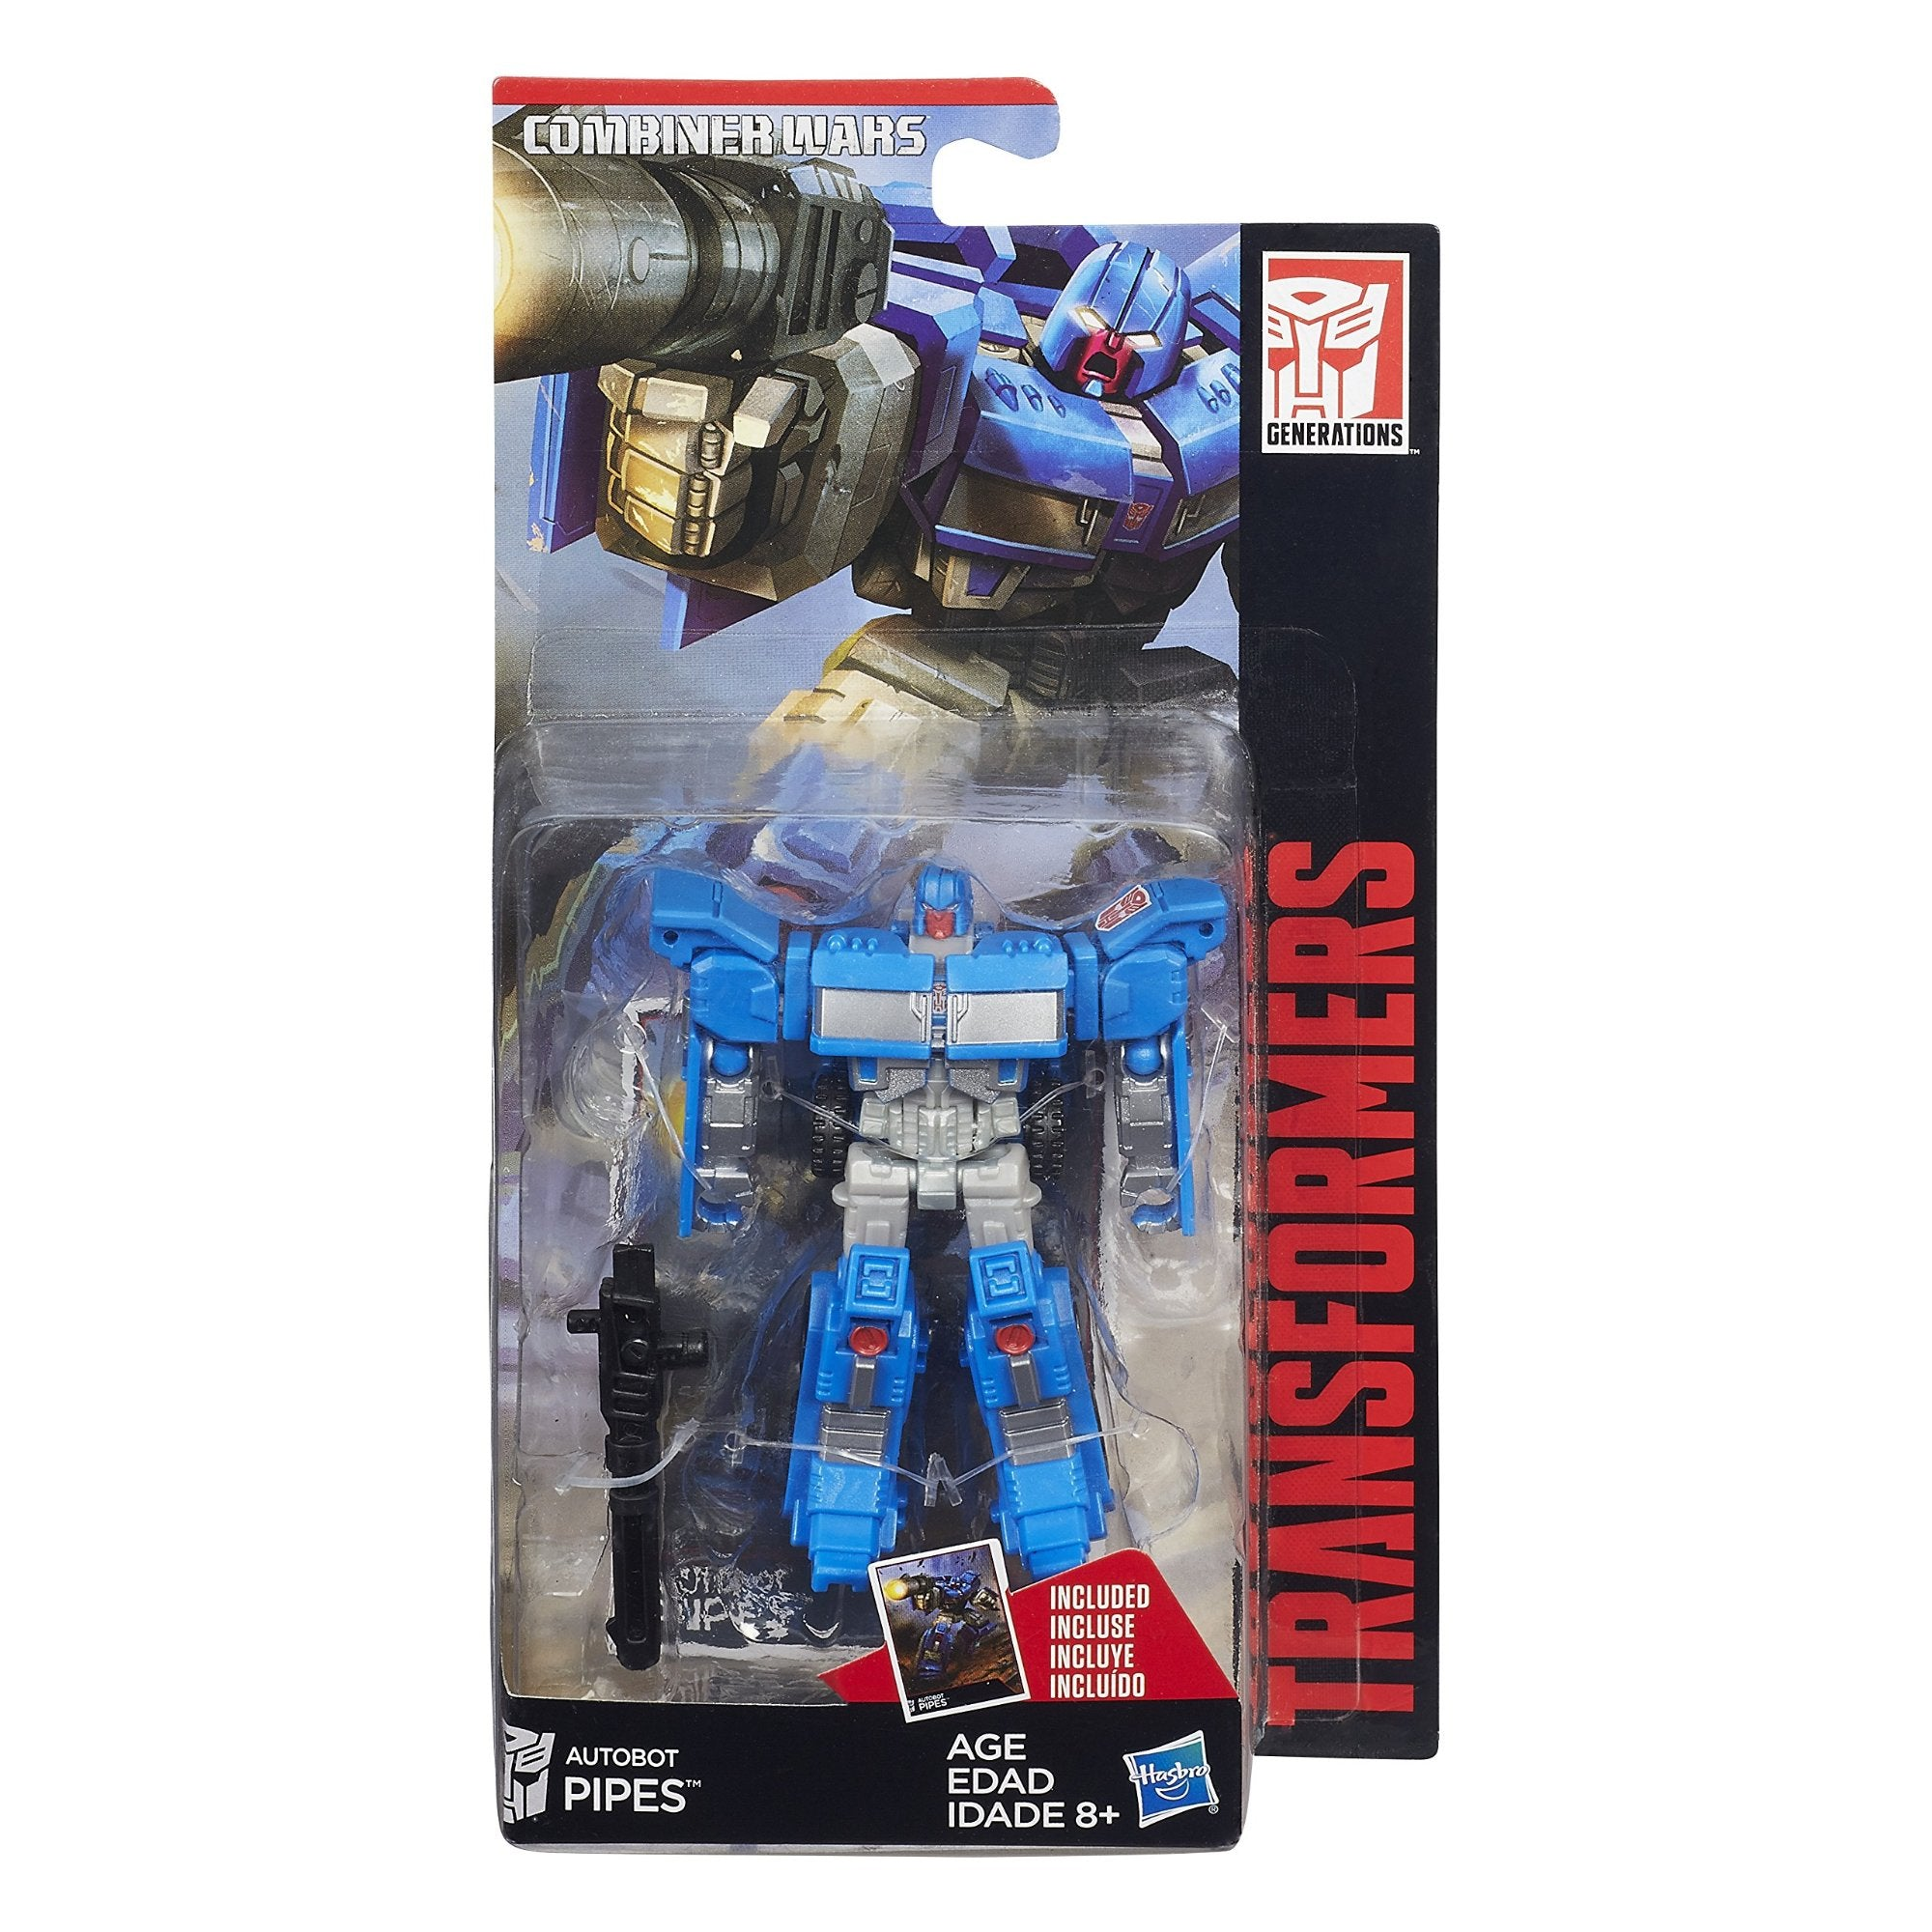 Hasbro Transformers Combiner Wars Legends Wave 5 - Pipes